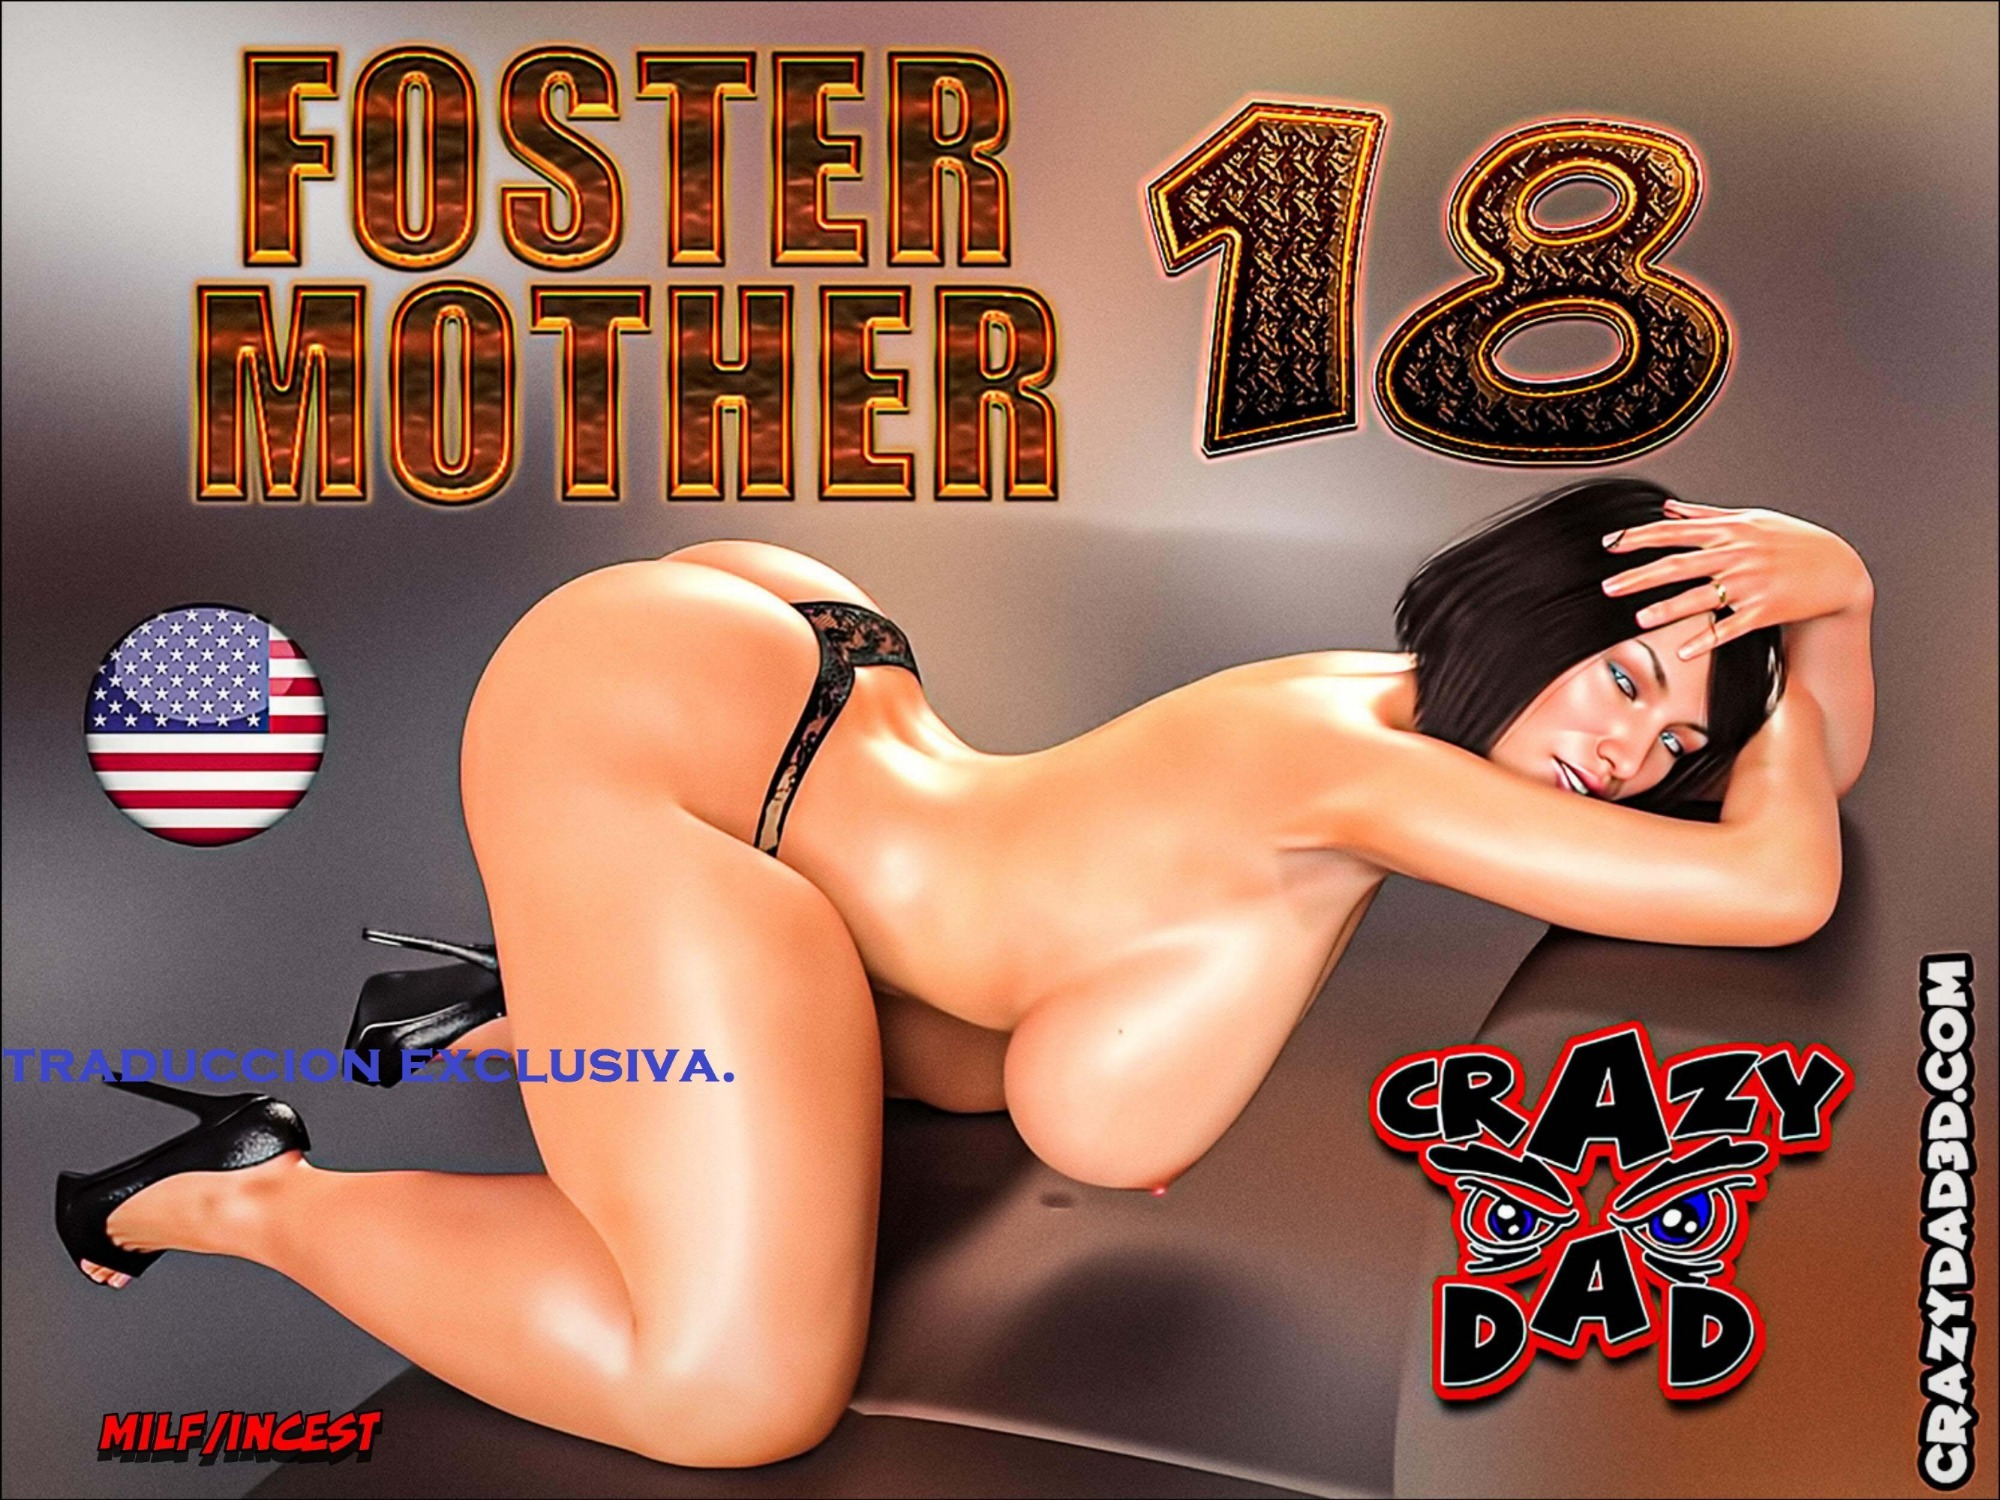 [Crazy Dad] Foster Mother 18